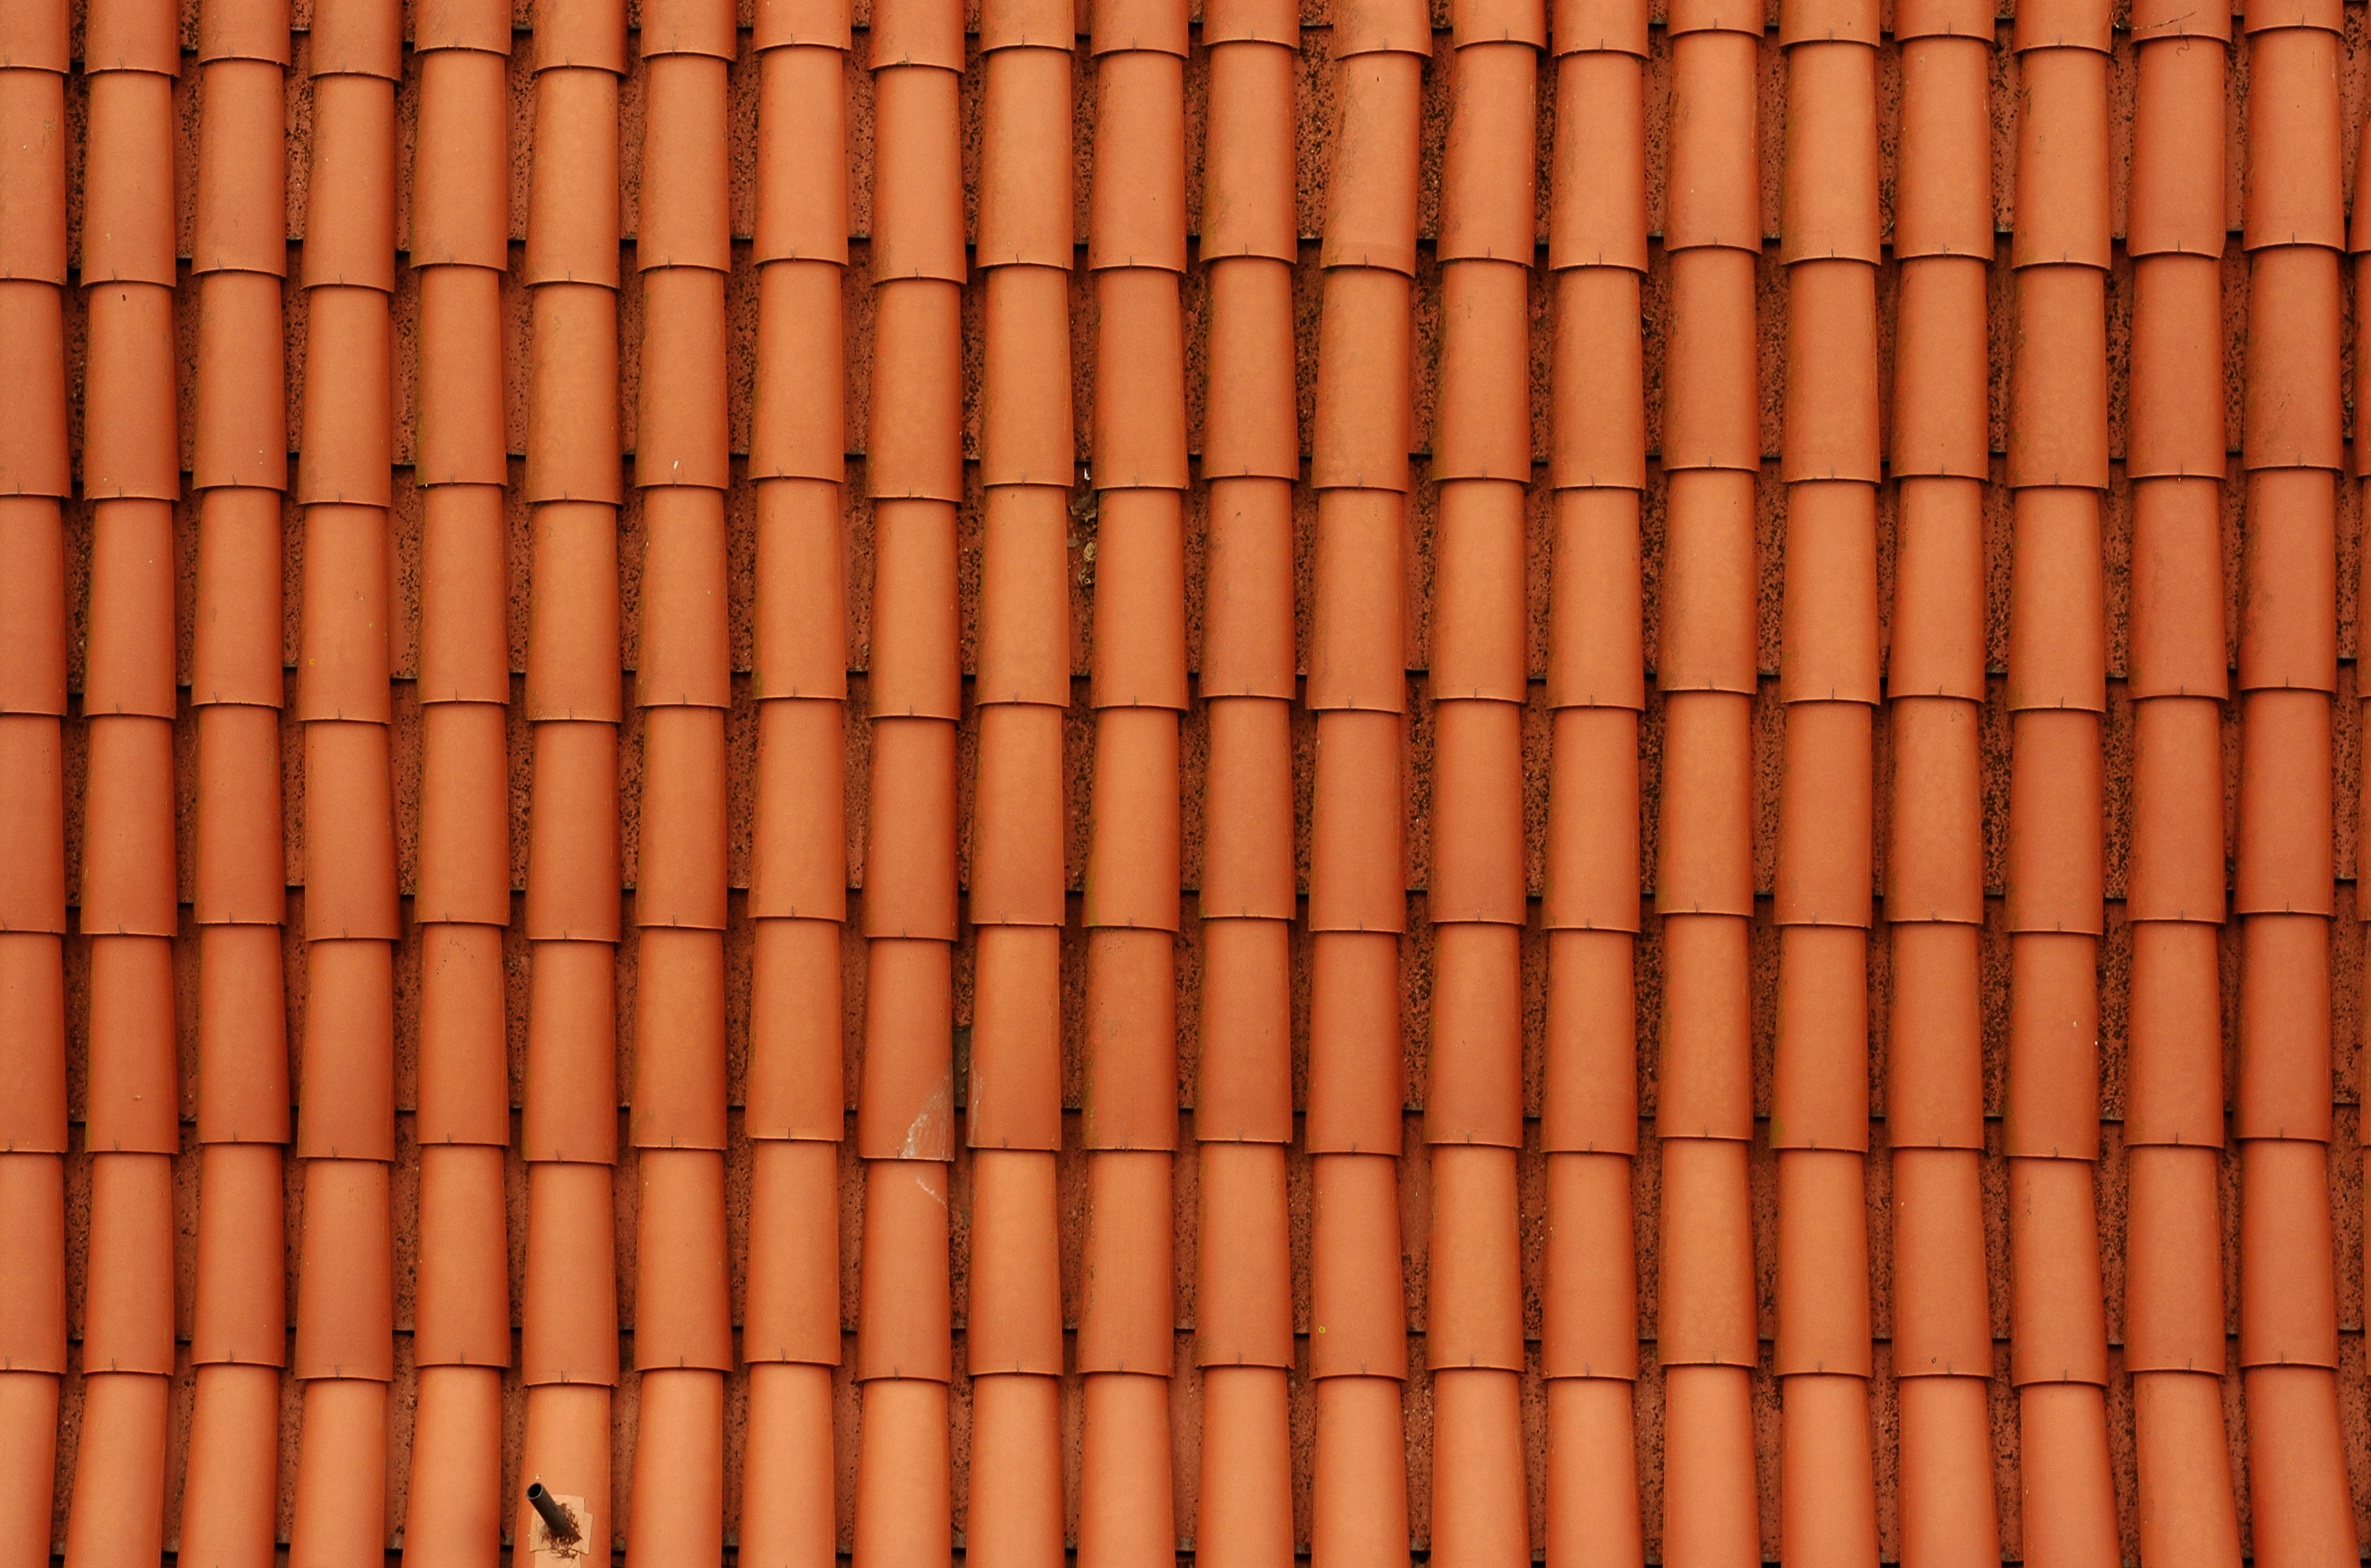 House Roof Images Stock Photos amp Vectors  Shutterstock